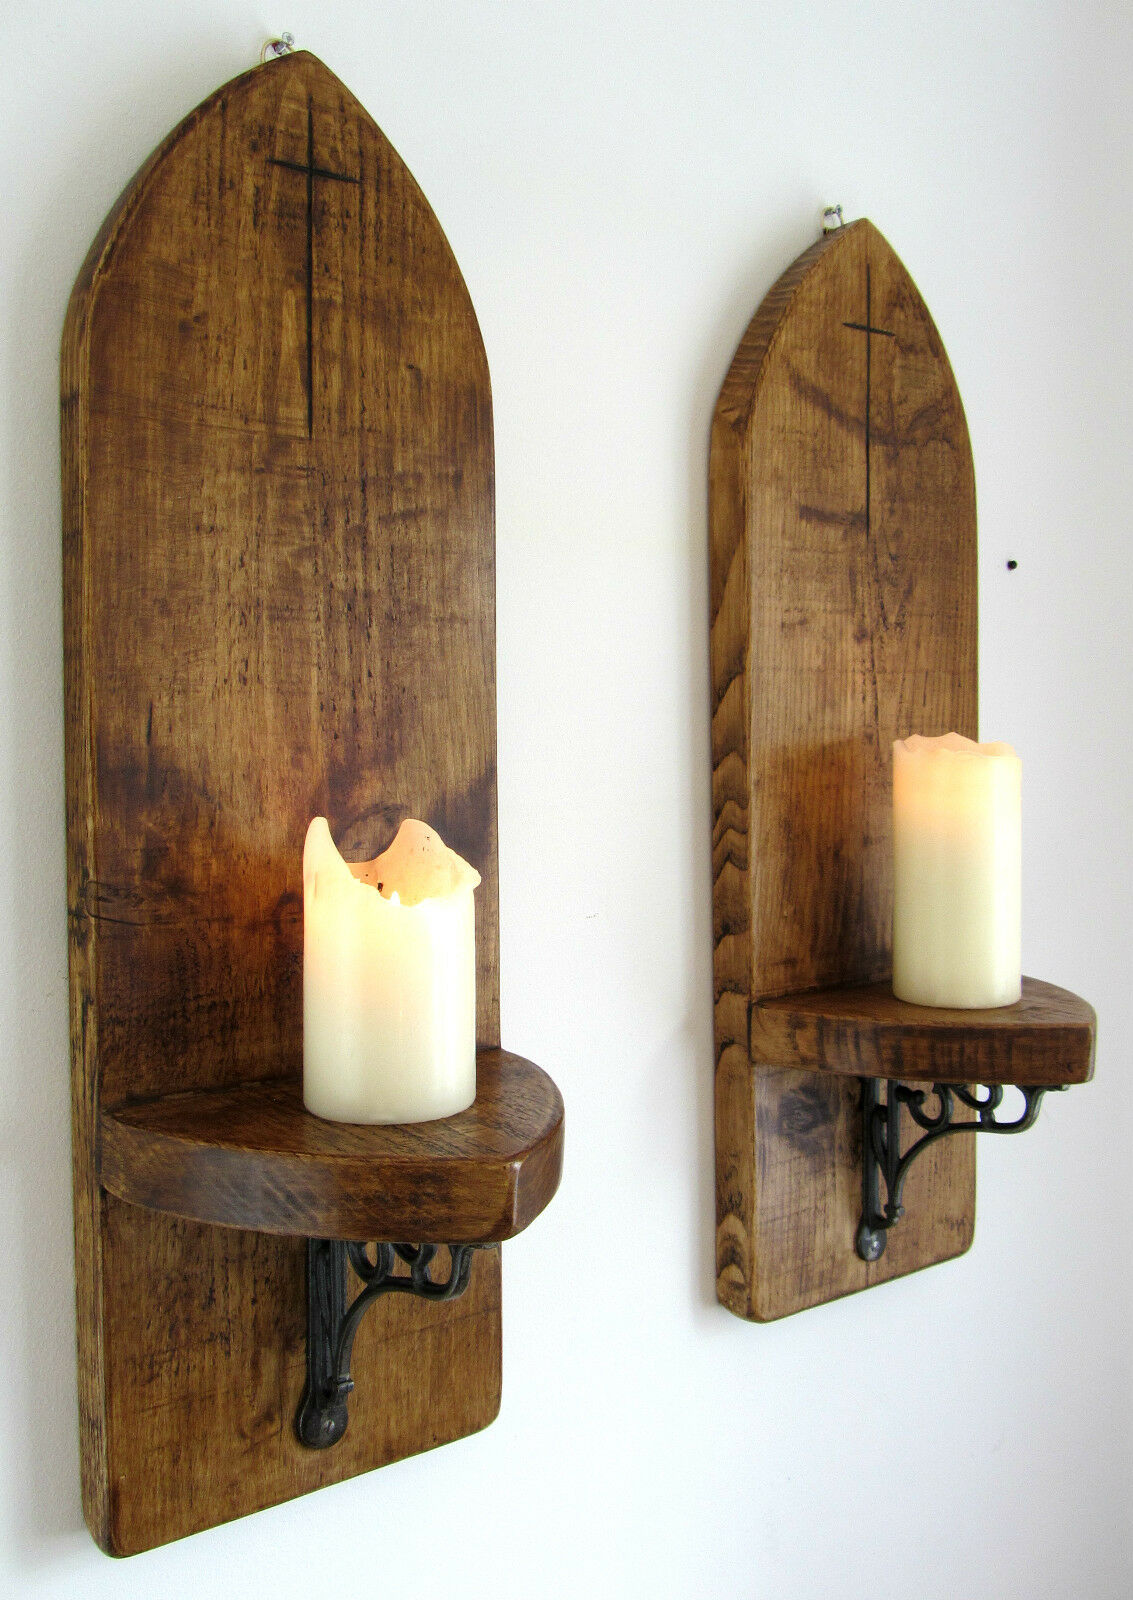 2X LARGE 70CM GOTHIC ARCH RUSTIC RECLAIMED SOLID WOOD WALL SCONCE CANDLE HOLDER